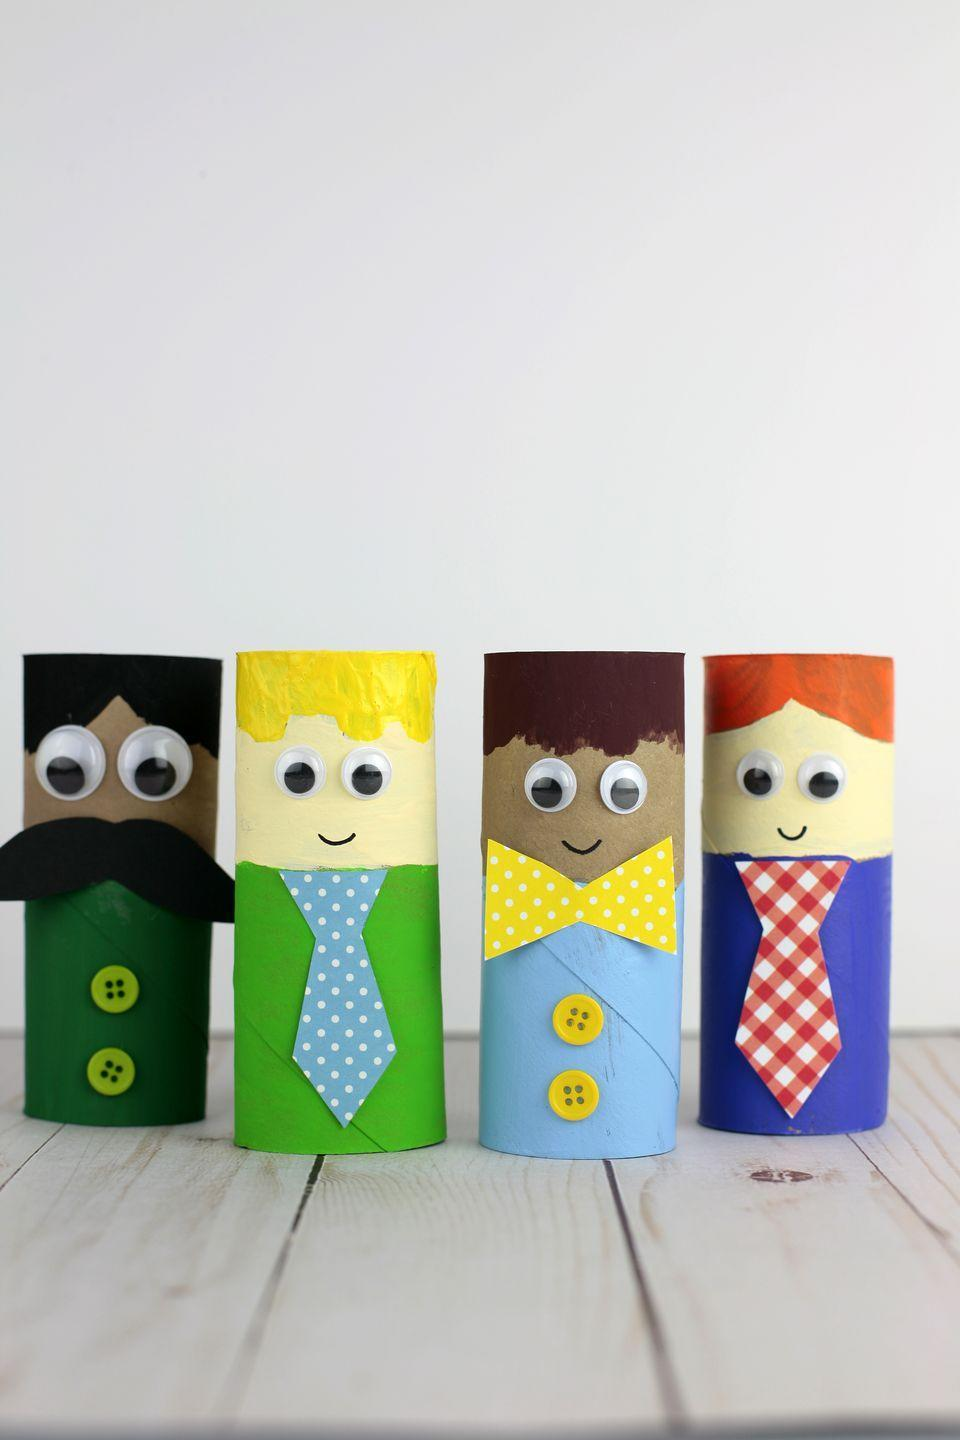 """<p>For a one-of-a-kind dad, you need a one-of-a-kind gift — like a paper tube roll dressed up to look just like him. You can even make his favorite outfit!</p><p><a href=""""https://nontoygifts.com/paper-roll-fathers-day-craft/"""" rel=""""nofollow noopener"""" target=""""_blank"""" data-ylk=""""slk:Get the tutorial at Non-Toy Gifts »"""" class=""""link rapid-noclick-resp""""><em>Get the tutorial at Non-Toy Gifts »</em></a></p>"""